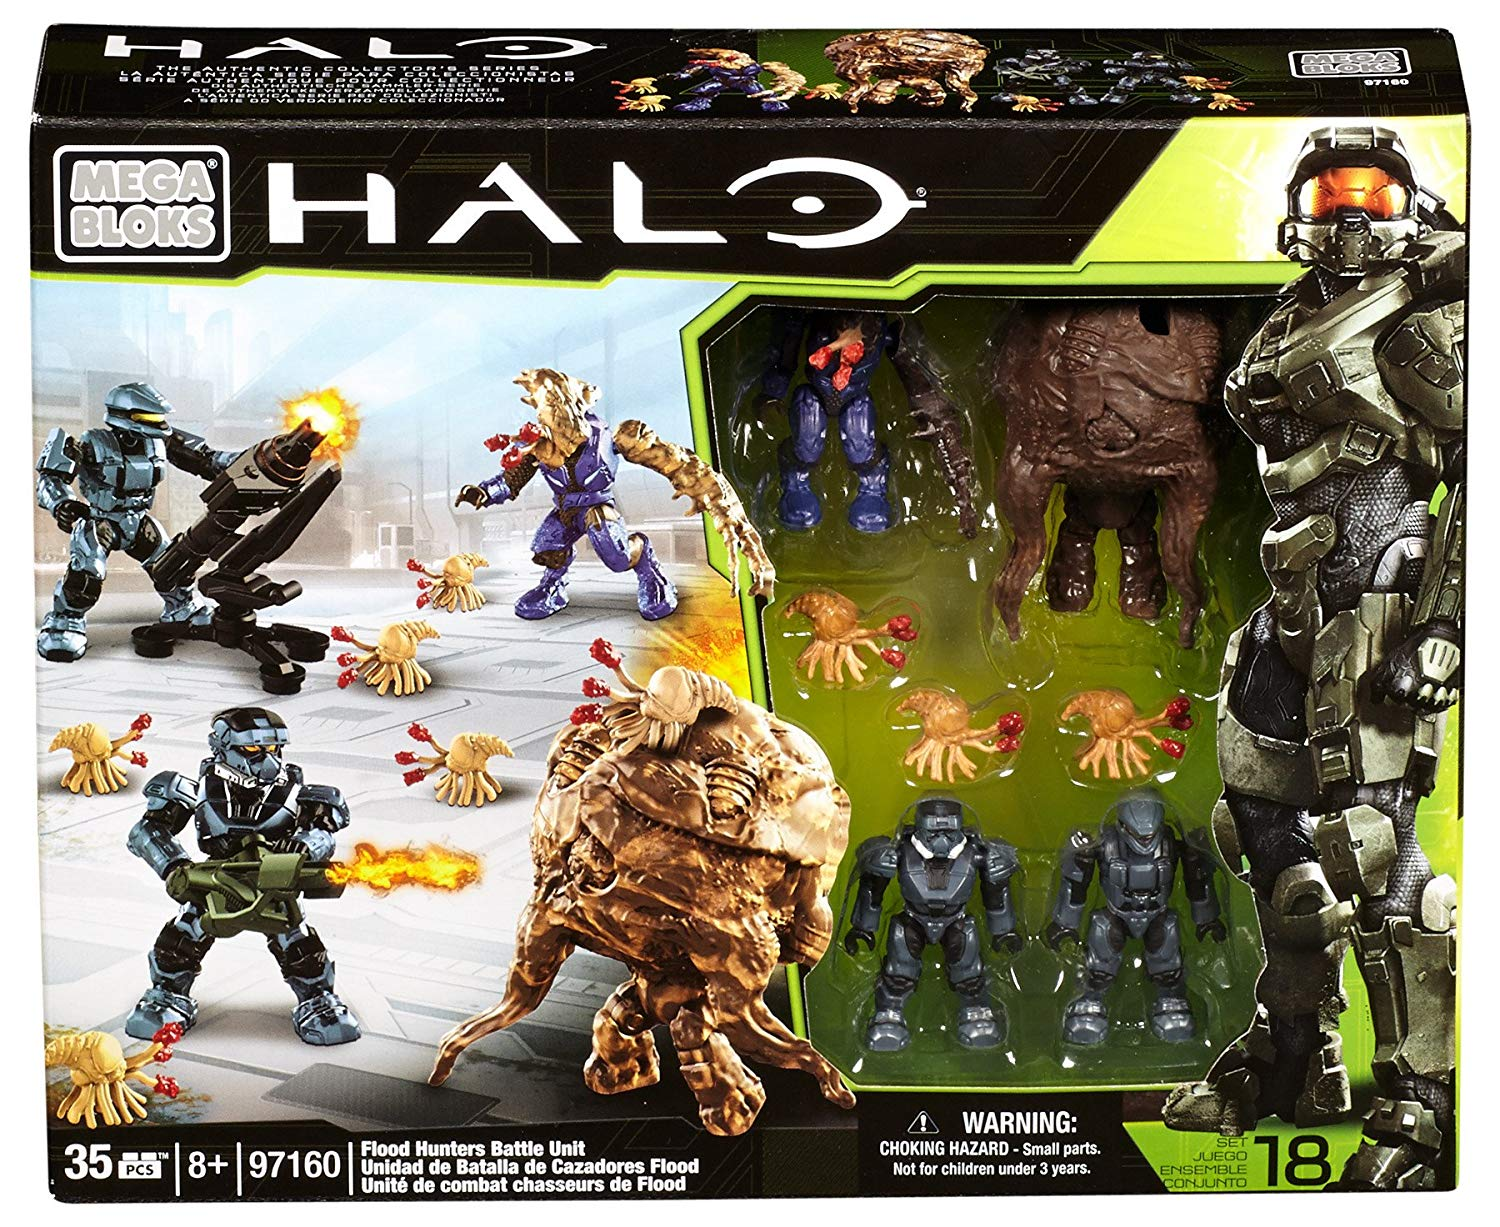 Halo Mega Bloks Exclusive Flood Hunters Battle Unit, an officially licensed A Certain Magical Index Cell Phone Accessory